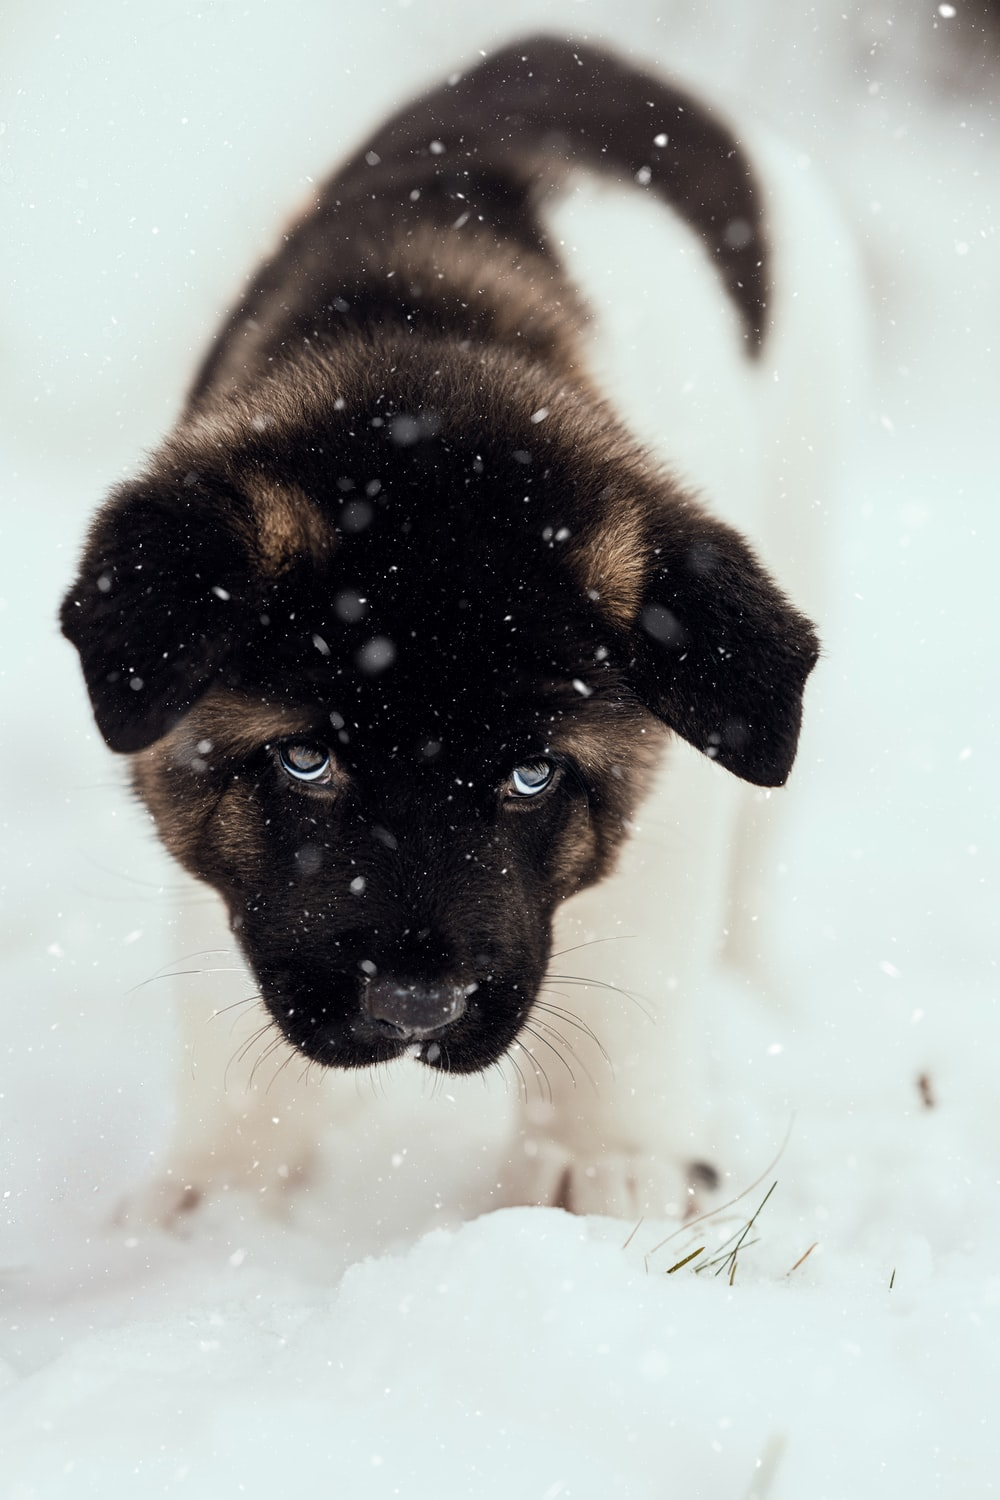 black and tan german shepherd puppy on snow covered ground during daytime